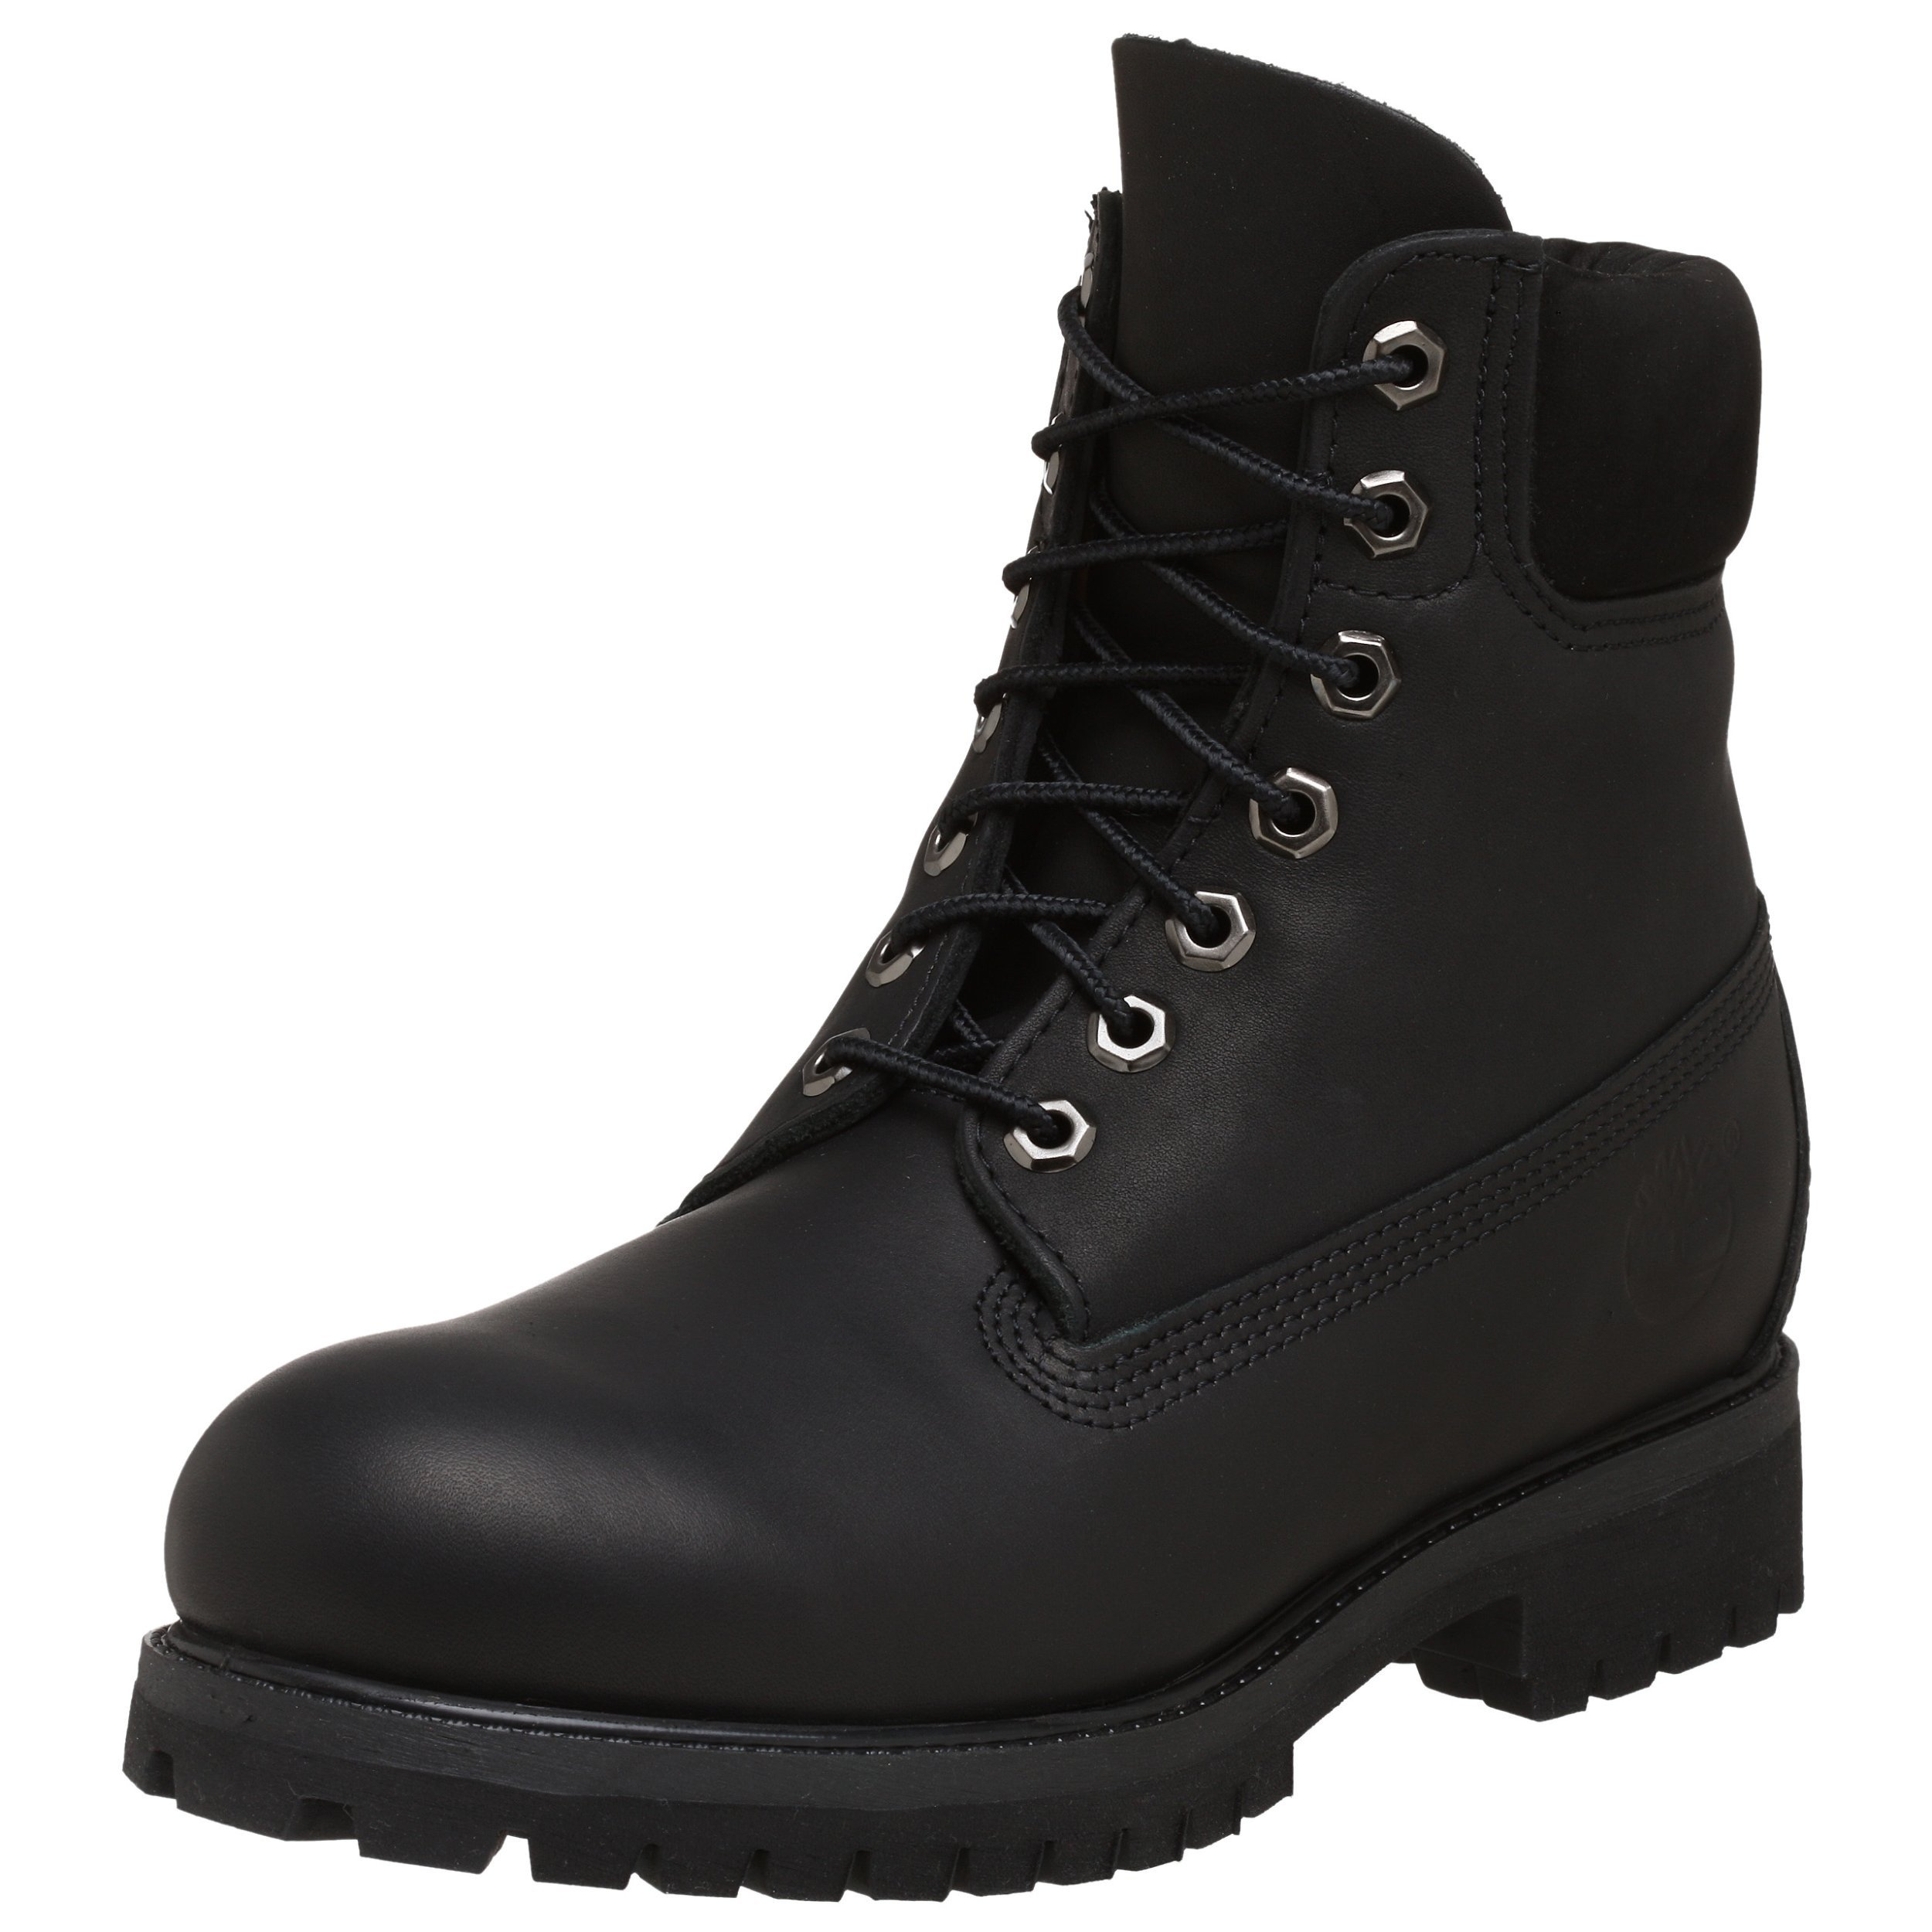 TB010054001 - icon 6 Inch Premium Boot 8.5 / Black